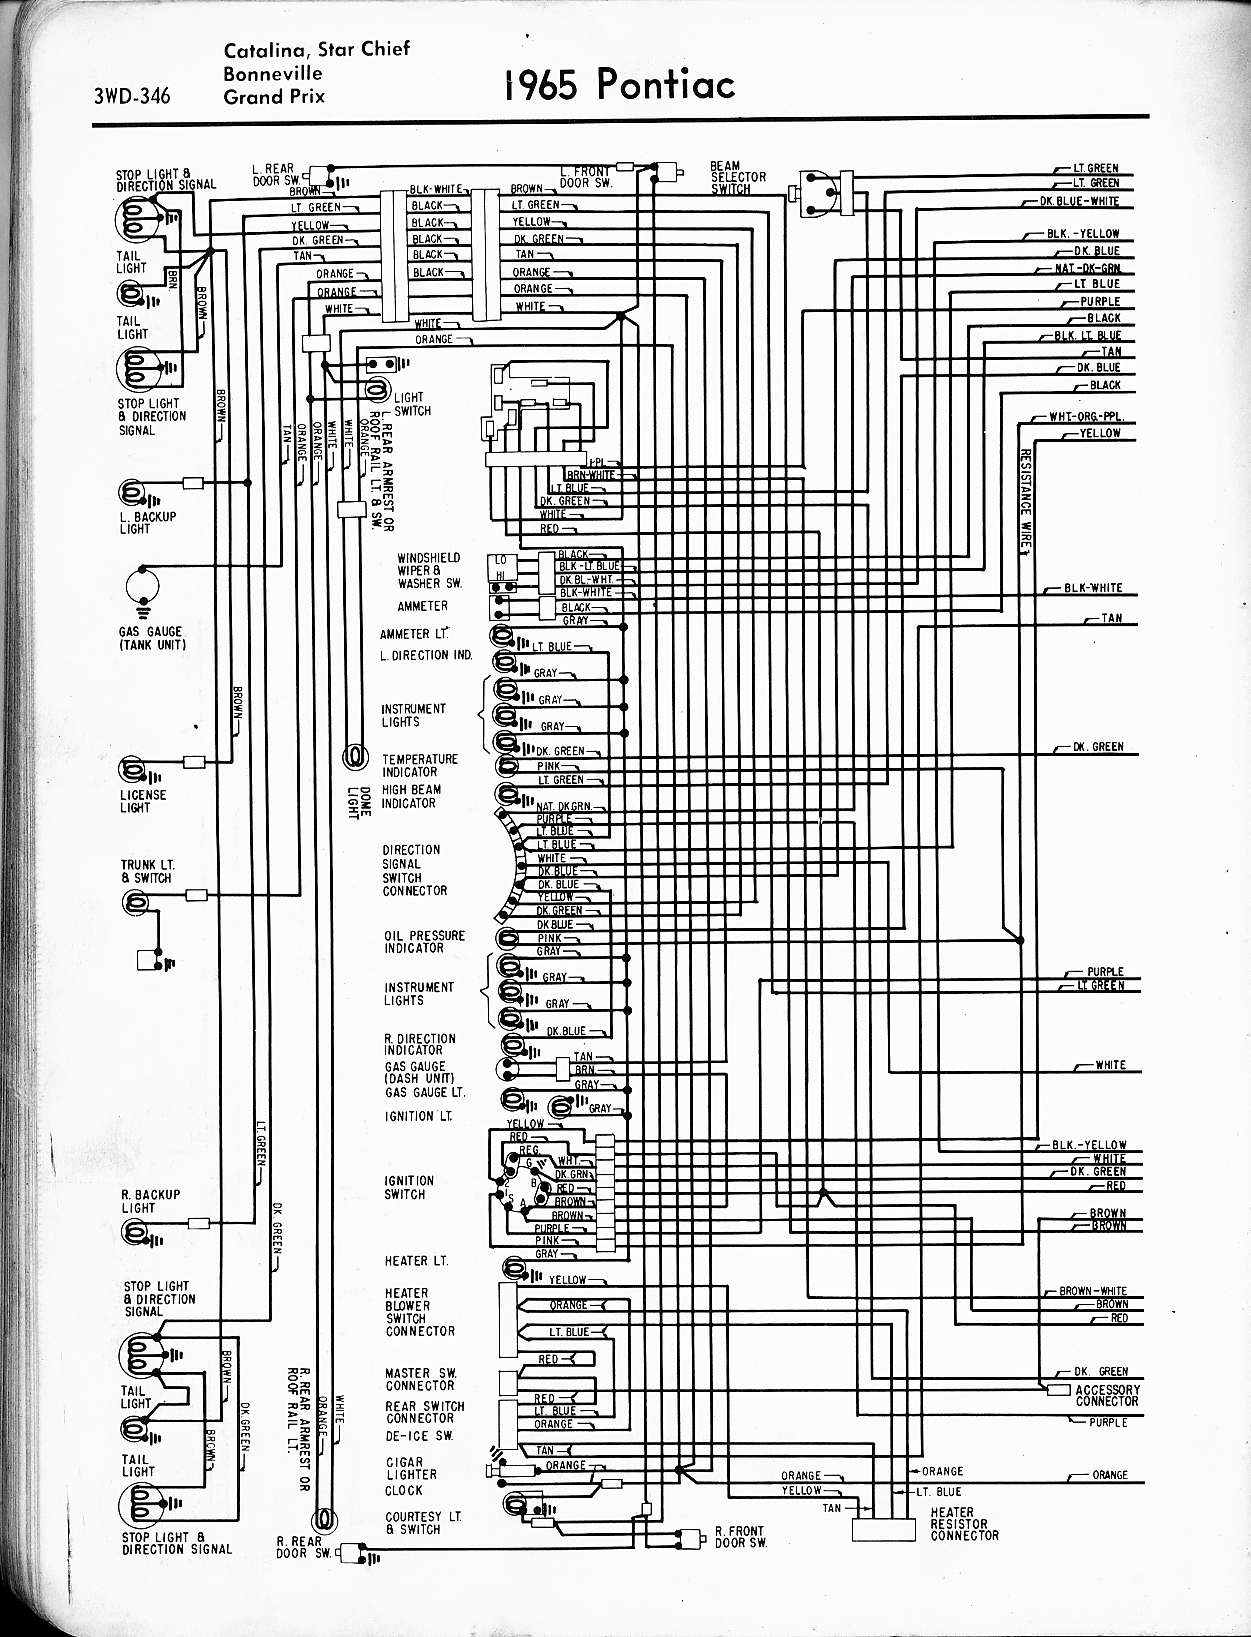 1958 Pontiac Wiring Diagram - Wiring Diagram •